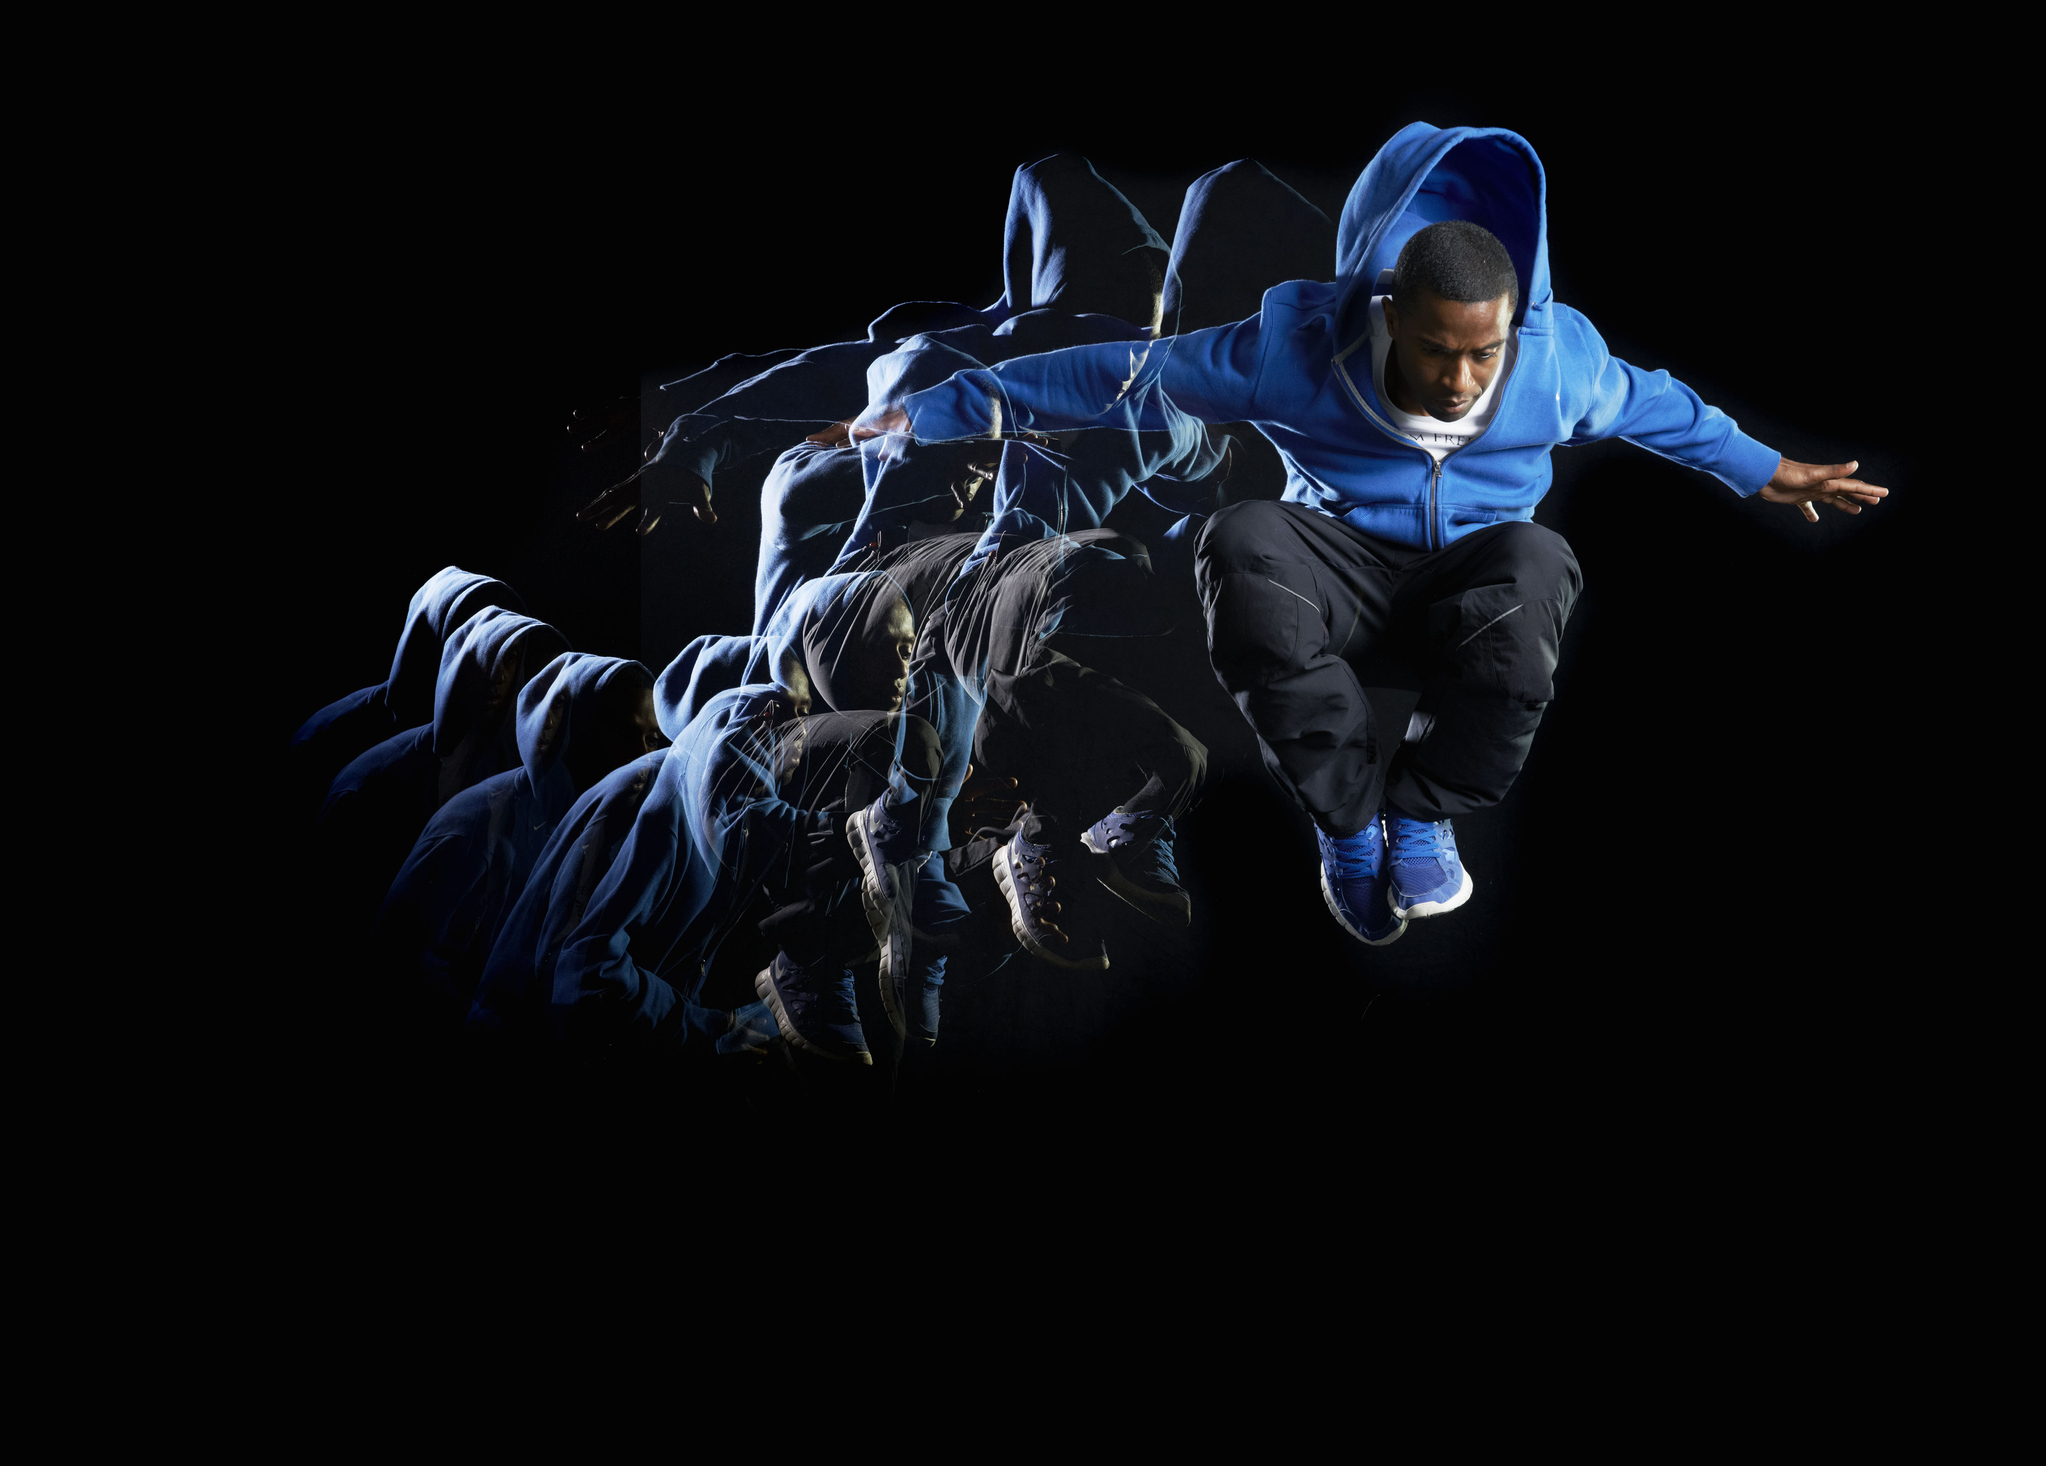 Man with blue jacket jumping in air with multiple strobe on a dark background